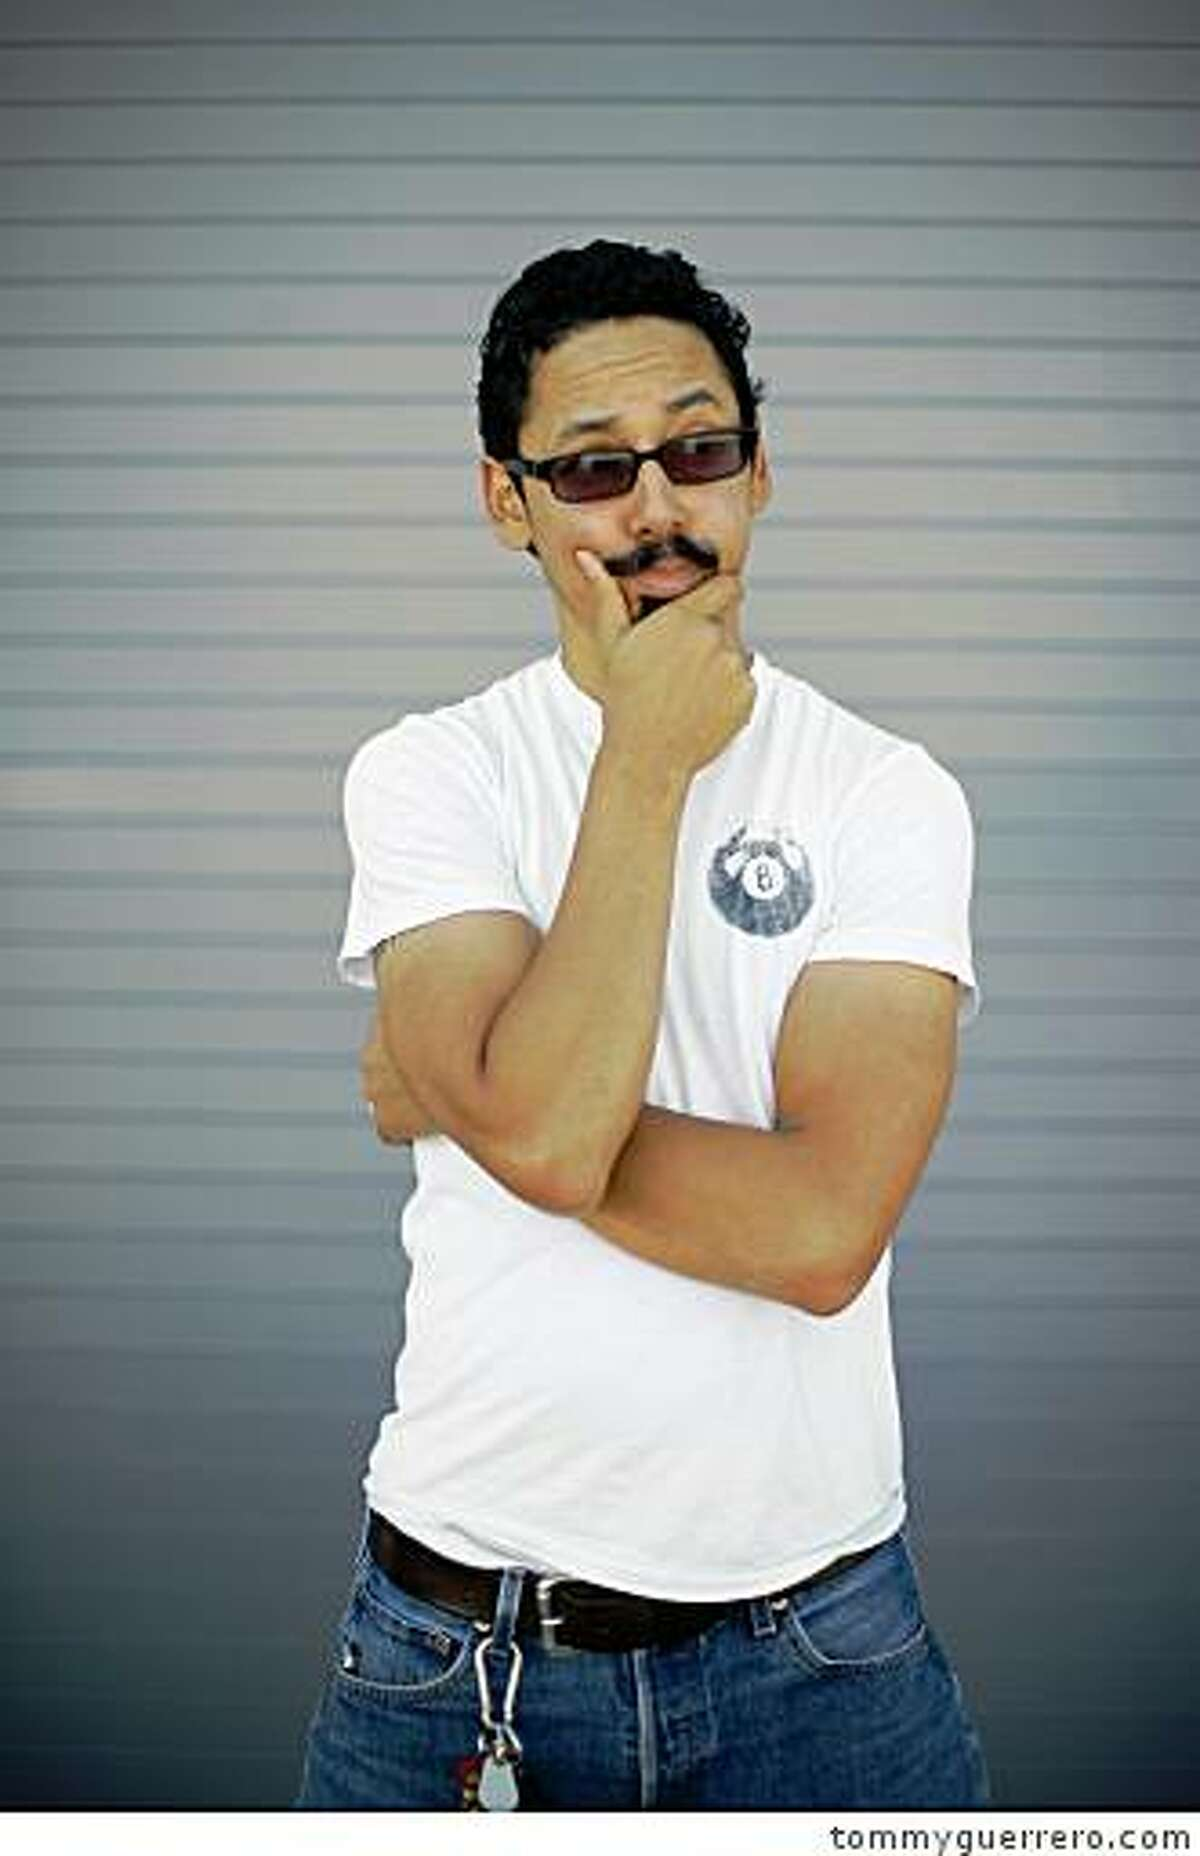 For Tommy Guerrero, music is just one passion; his other is skateboarding.